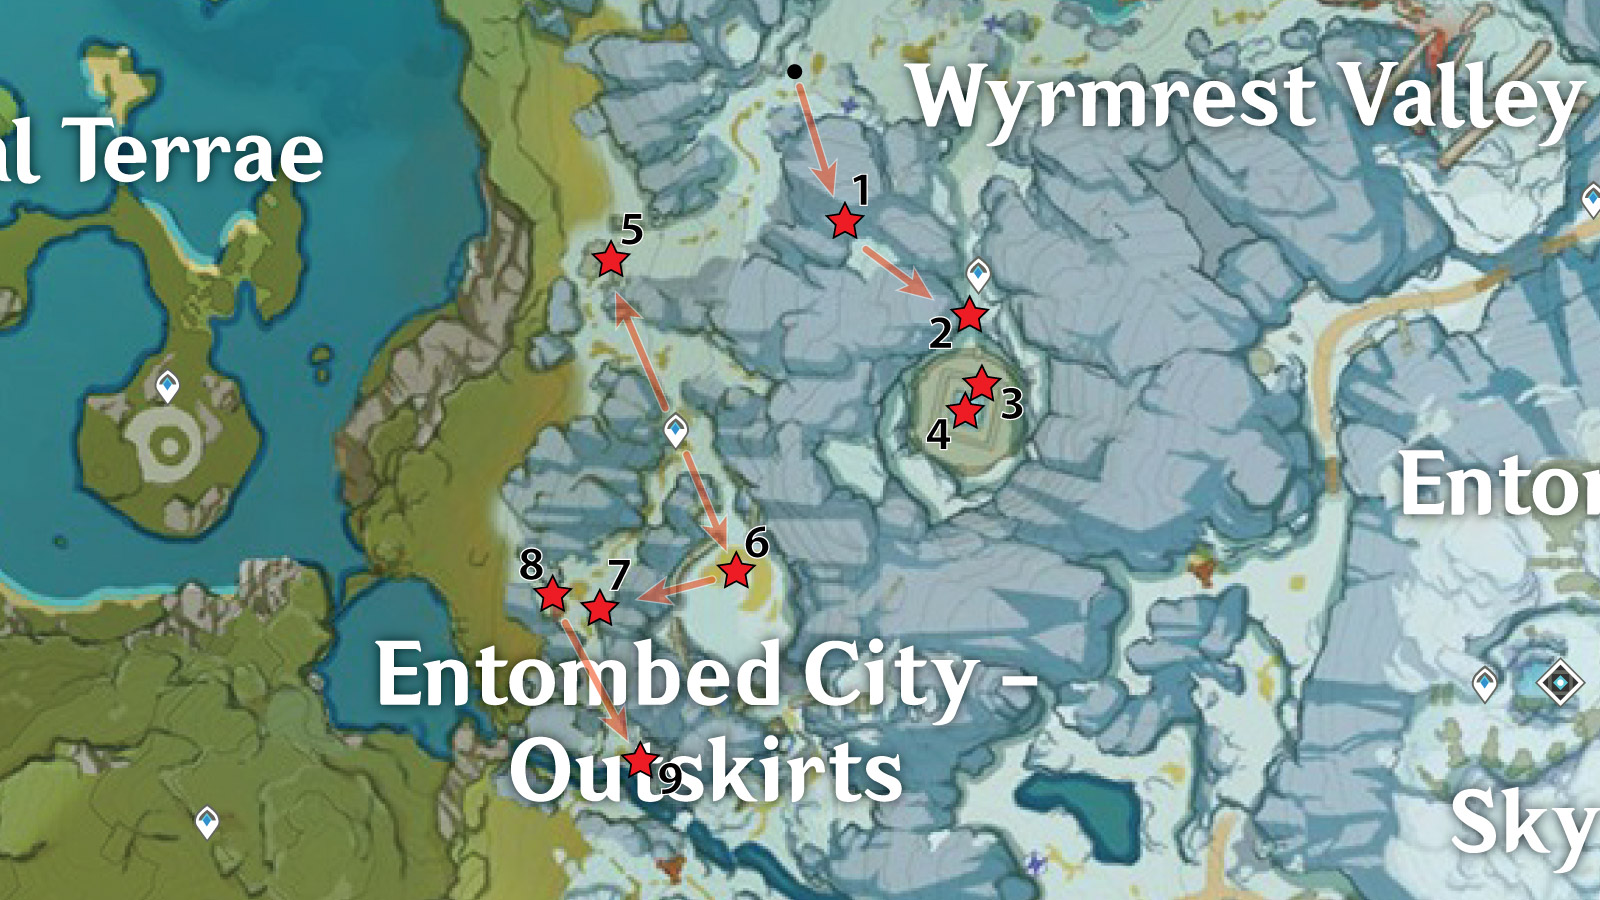 Entombed City - Outskirts Crimson Agate Locations